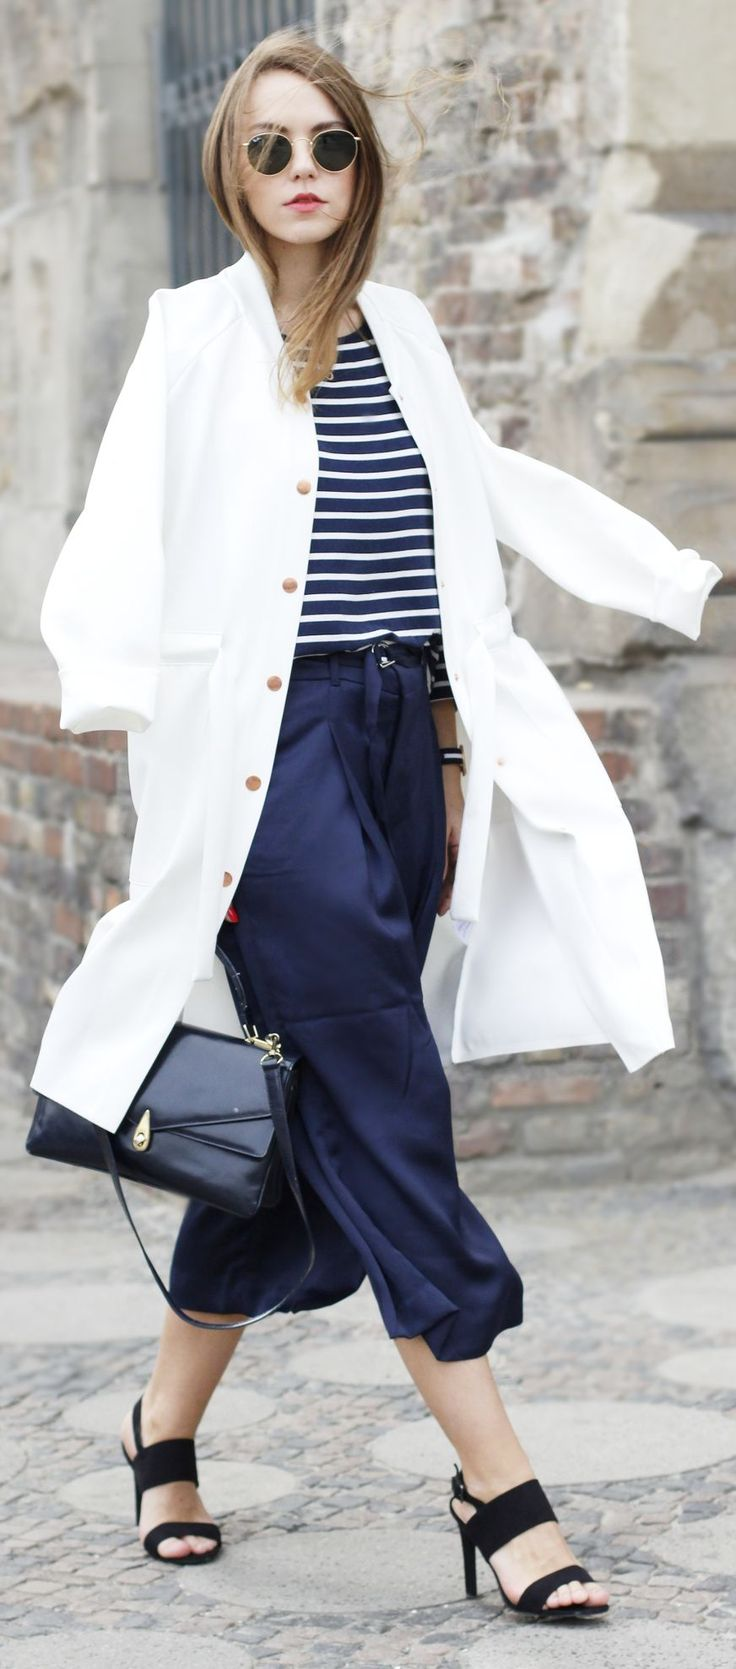 Spring Stripes Casual Chic Style by Goldschnee